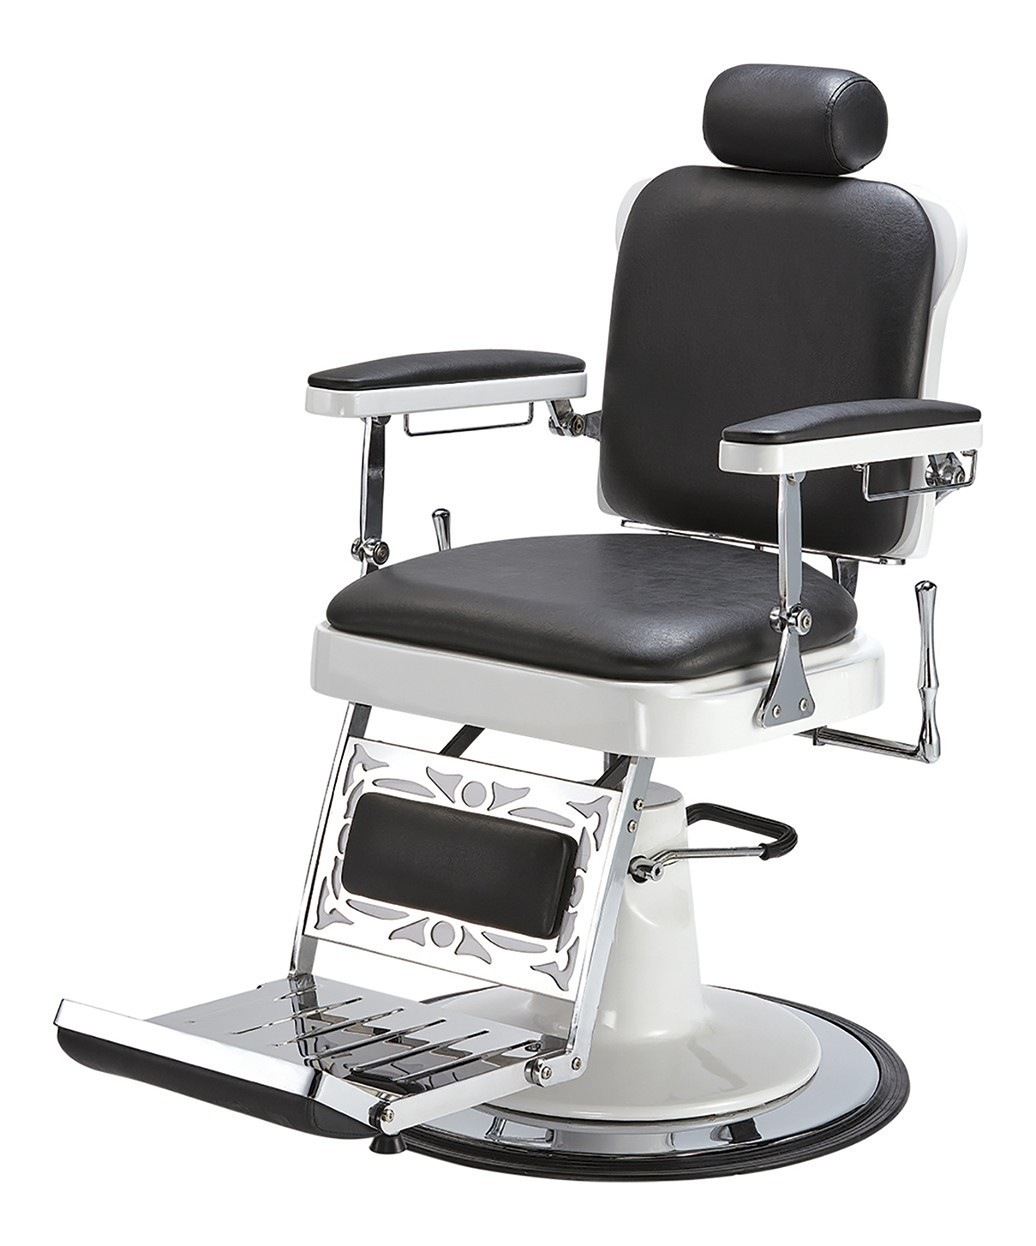 Collins Barber Chair 663 Barber Chairs Collins Barber Chair Am Salon